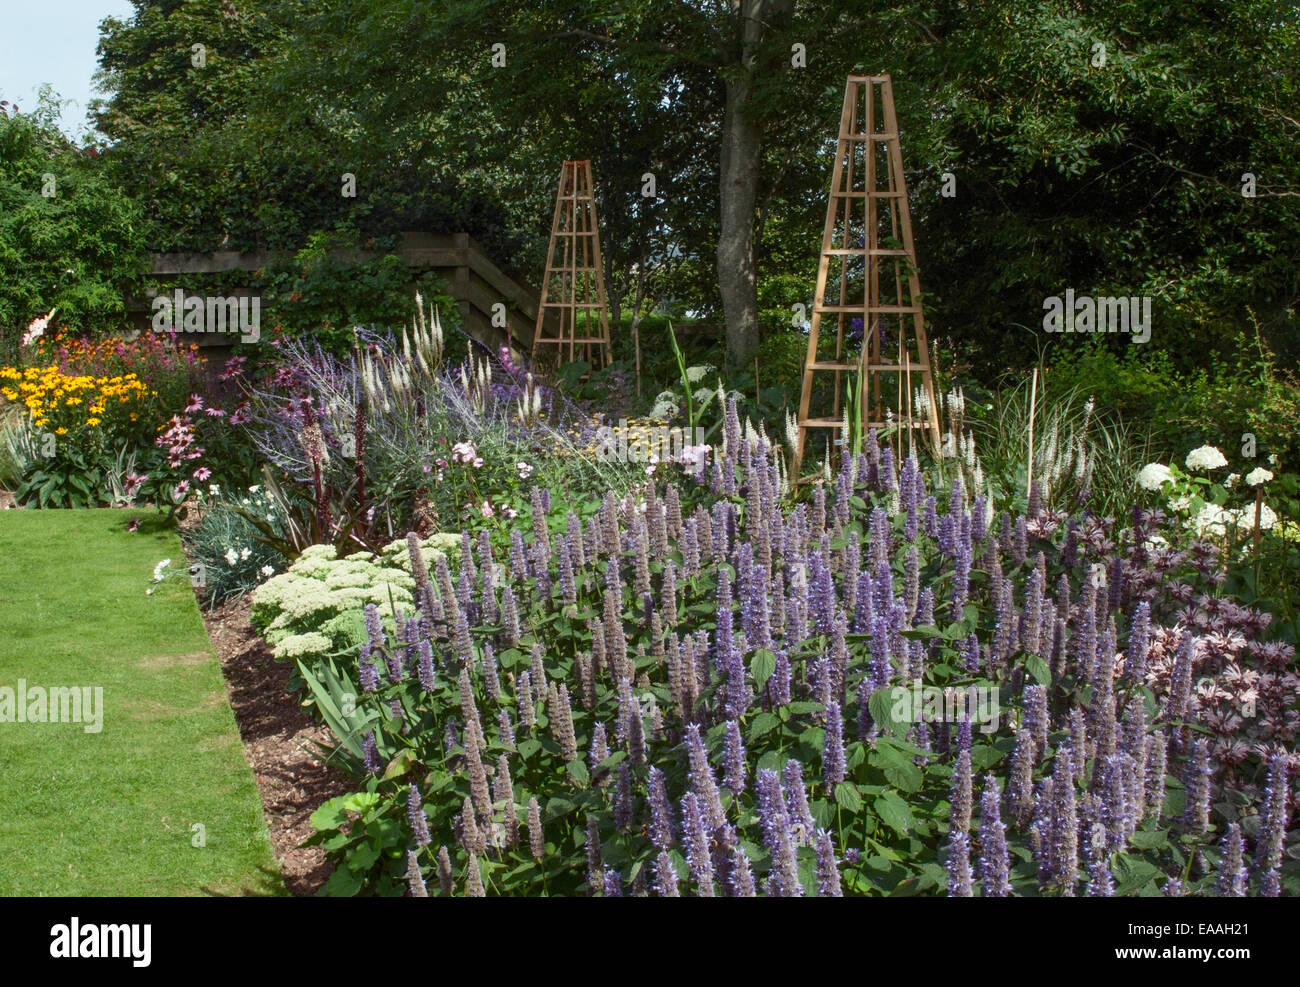 New herbaceous border at Pecorama Gardens, Beer, Devon with Echinacea 'Magnus' and Agastache foeniculum, - Stock Image